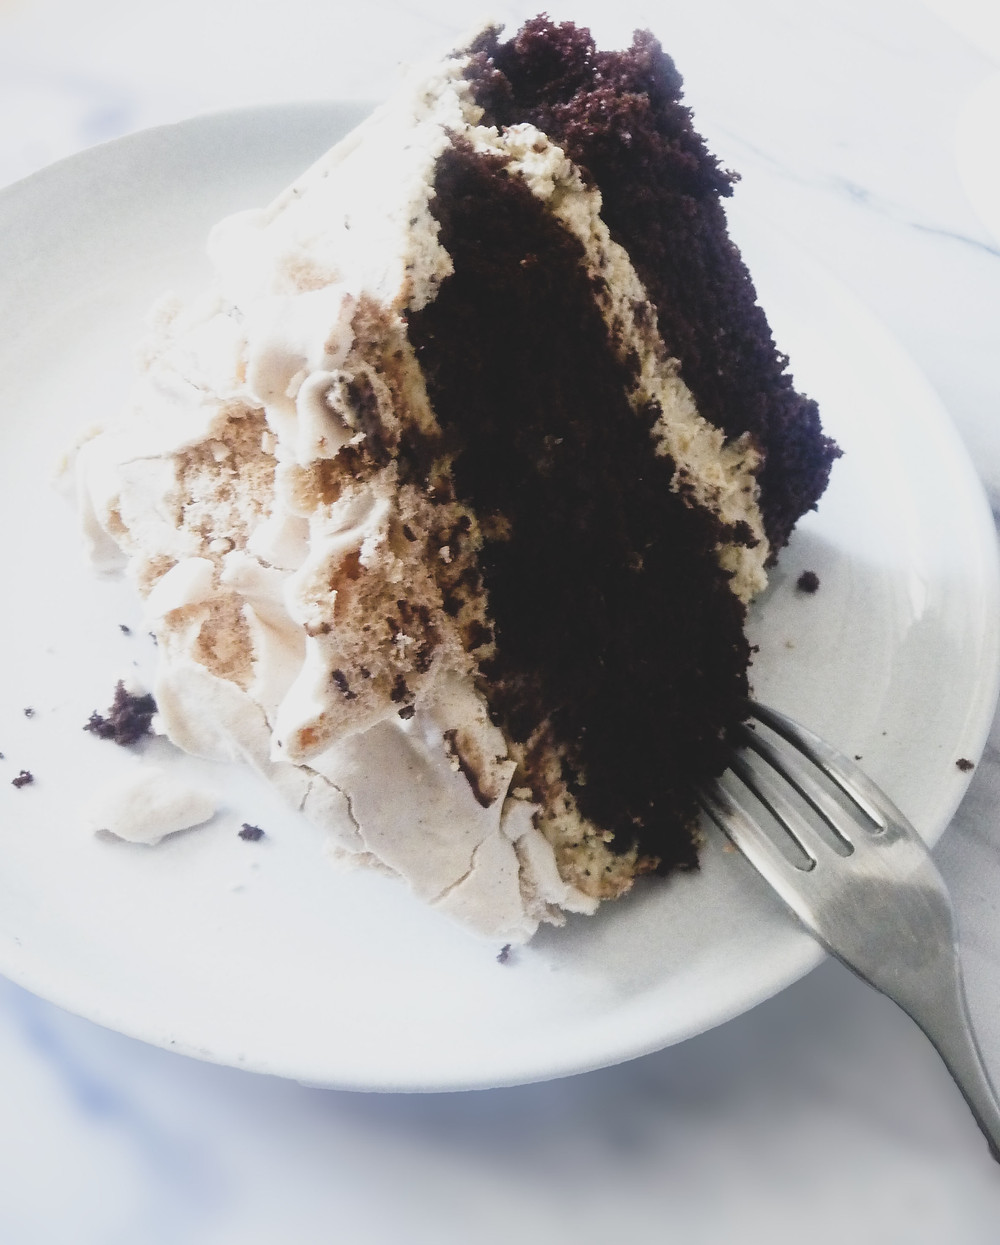 Double Chocolate Cake with Coffee Cream and Cinnamon Meringue